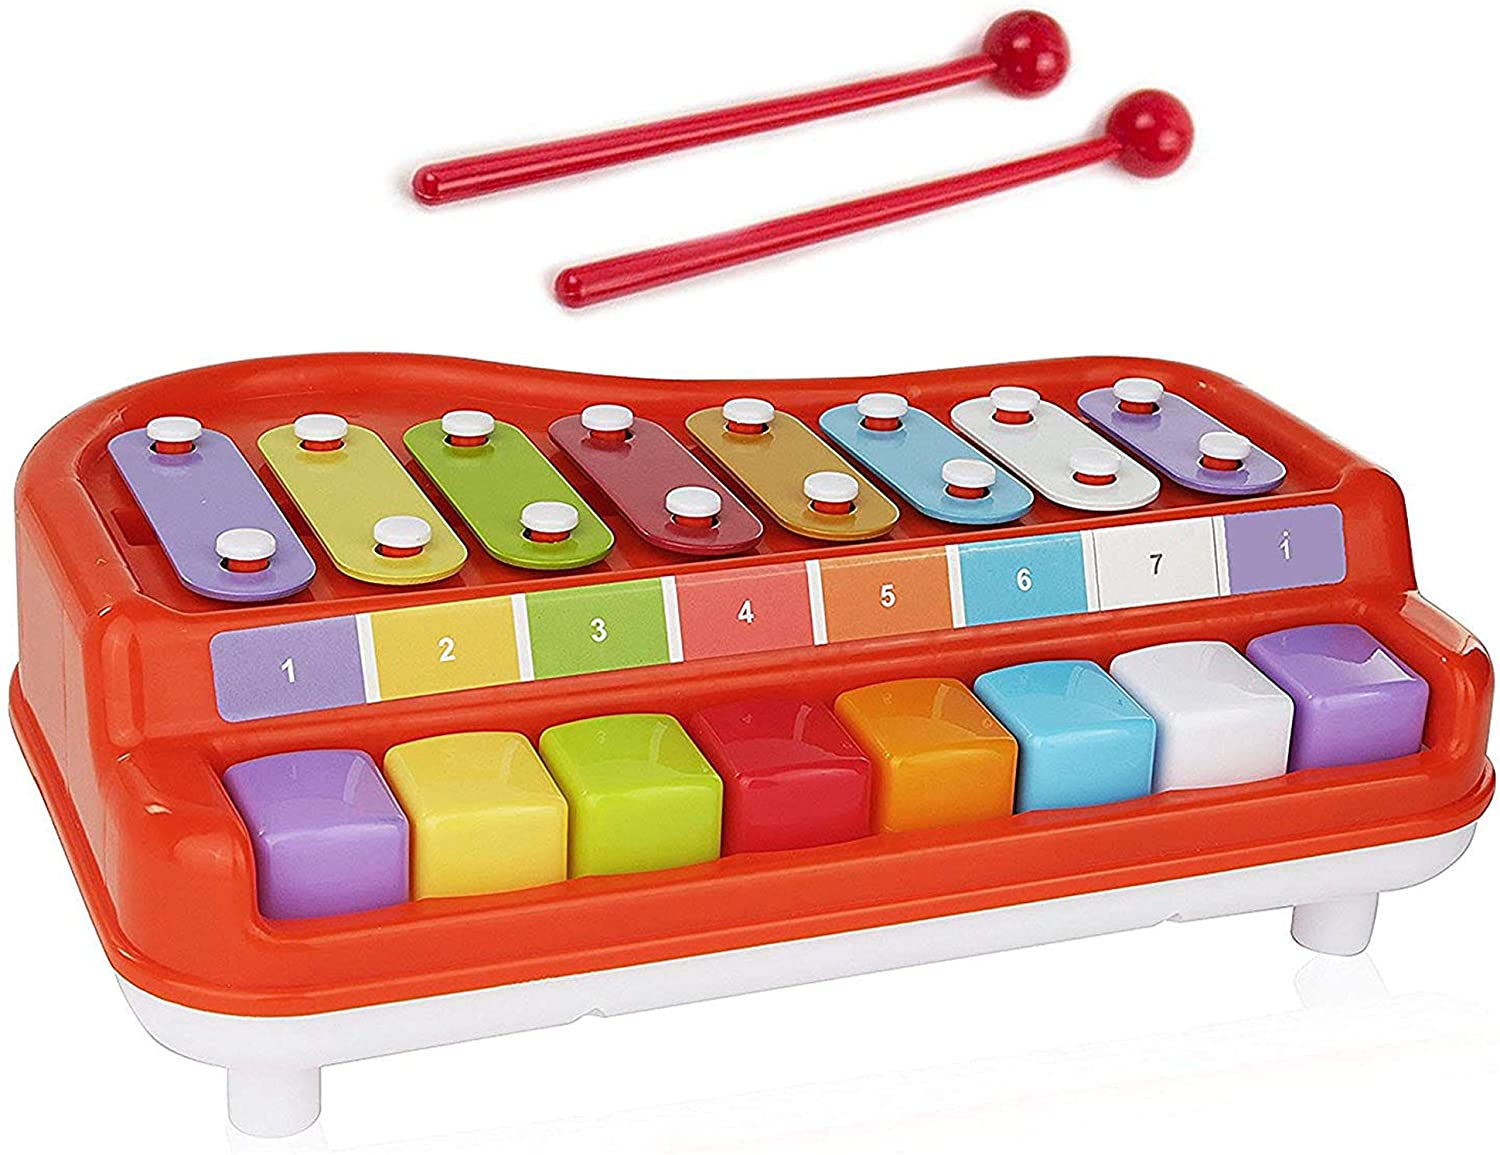 Toysery 2-In-1 Toy Piano Xylophone